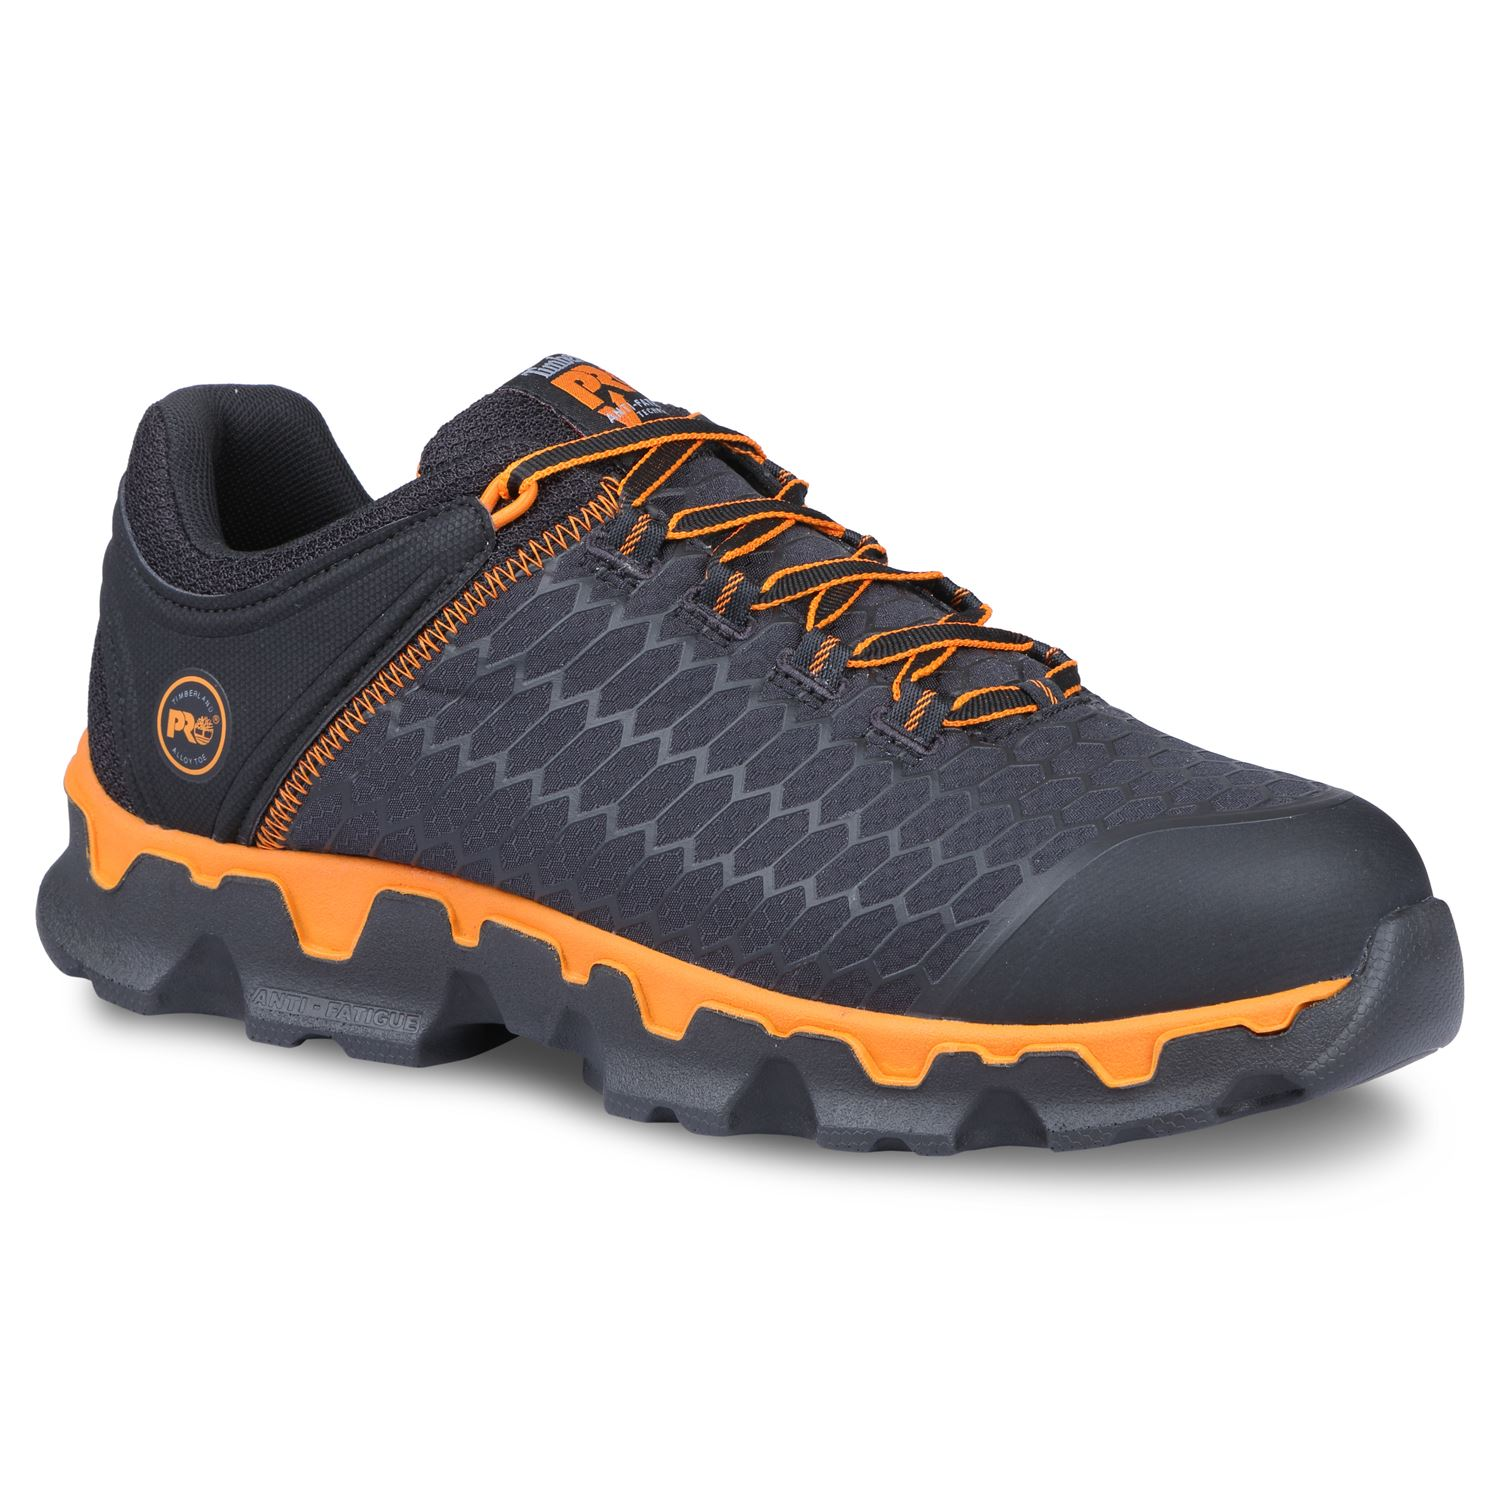 Timberland Pro Shoes Mens Powertrain Sport Alloy Safety Toe Black/Orange